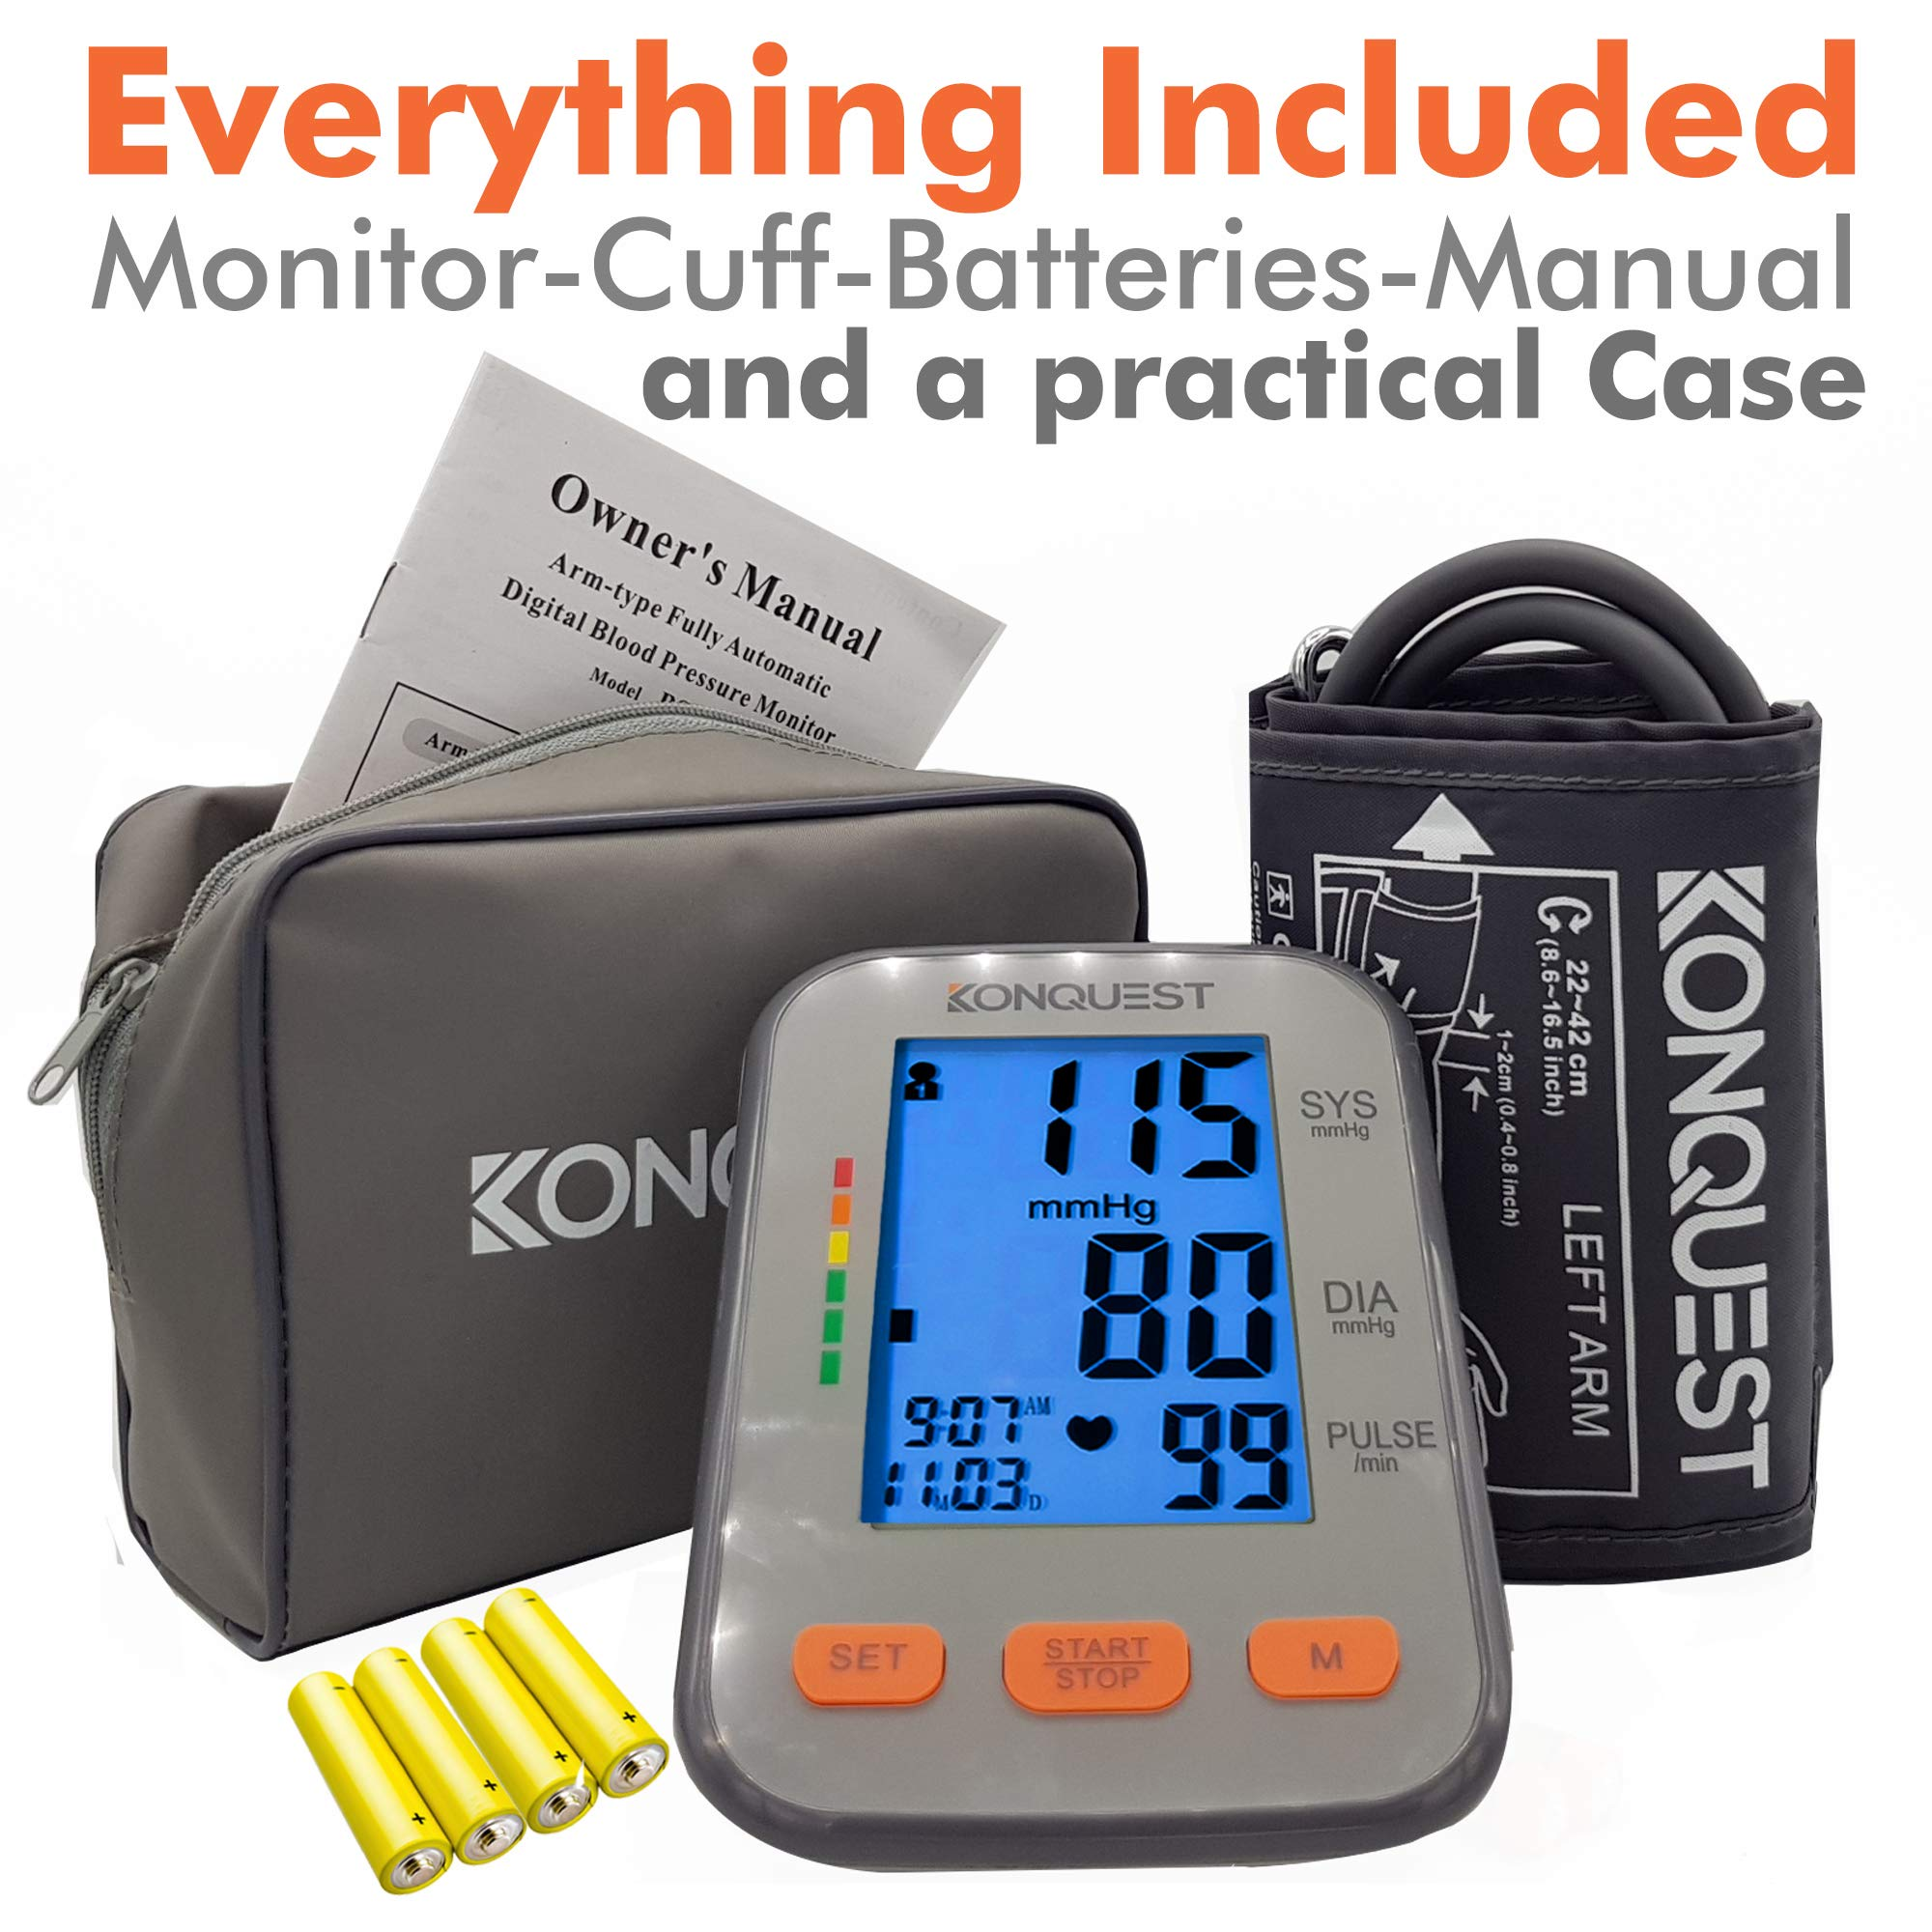 Konquest KBP-2704A Automatic Upper Arm Blood Pressure Monitor - Accurate, Adjustable Cuff, Large Backlit Display - Irregular Heartbeat & Hypertension Detector - Tensiometro Digital